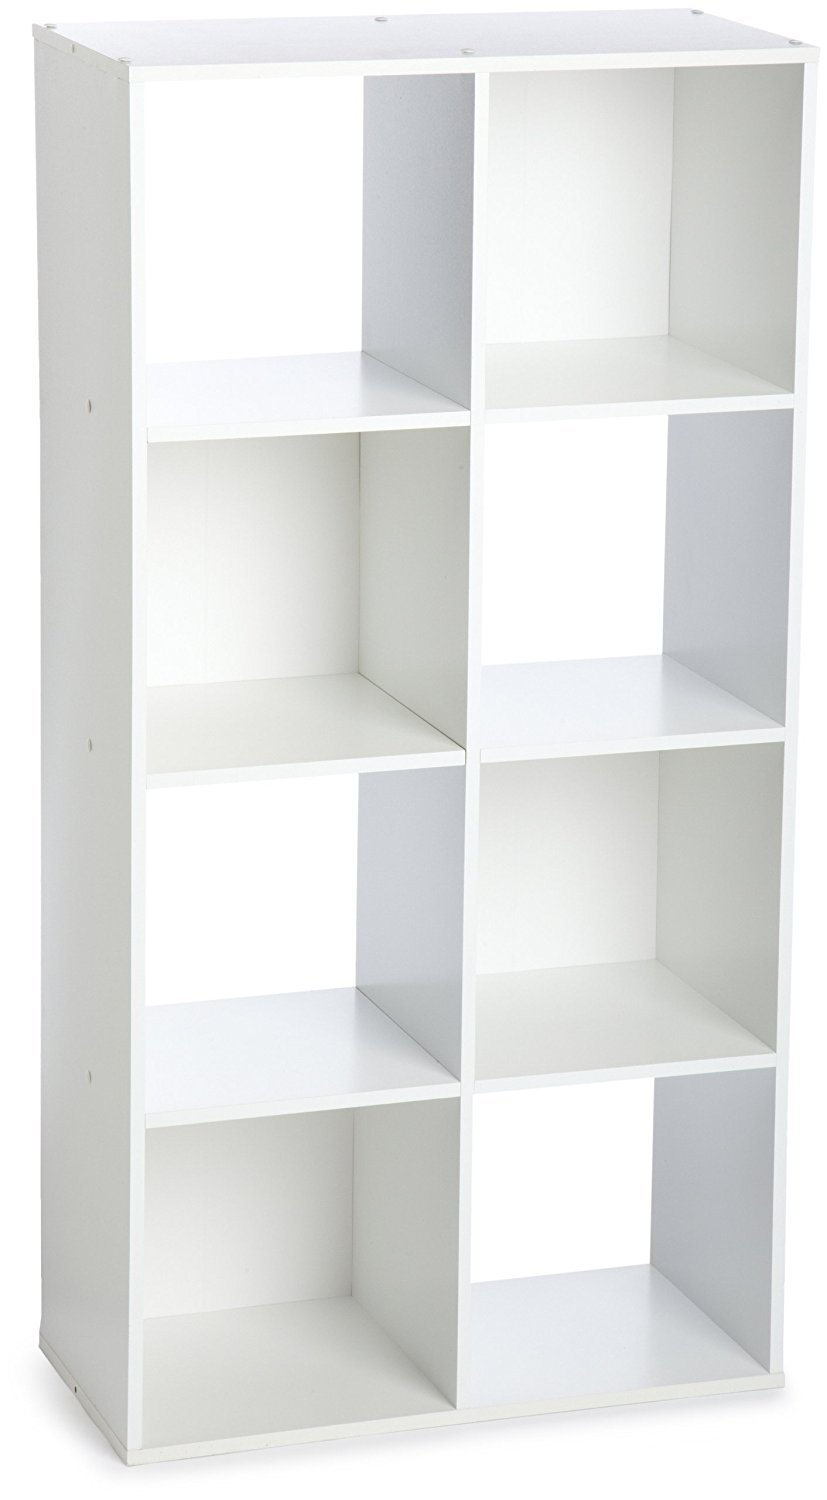 Cubeicals 4 6 8 9 Or 12 Cube Cubical Storage Display Organizer Only 10 In Stock Order Today Product Descri Cube Organizer Storage Closet Organization Shelving